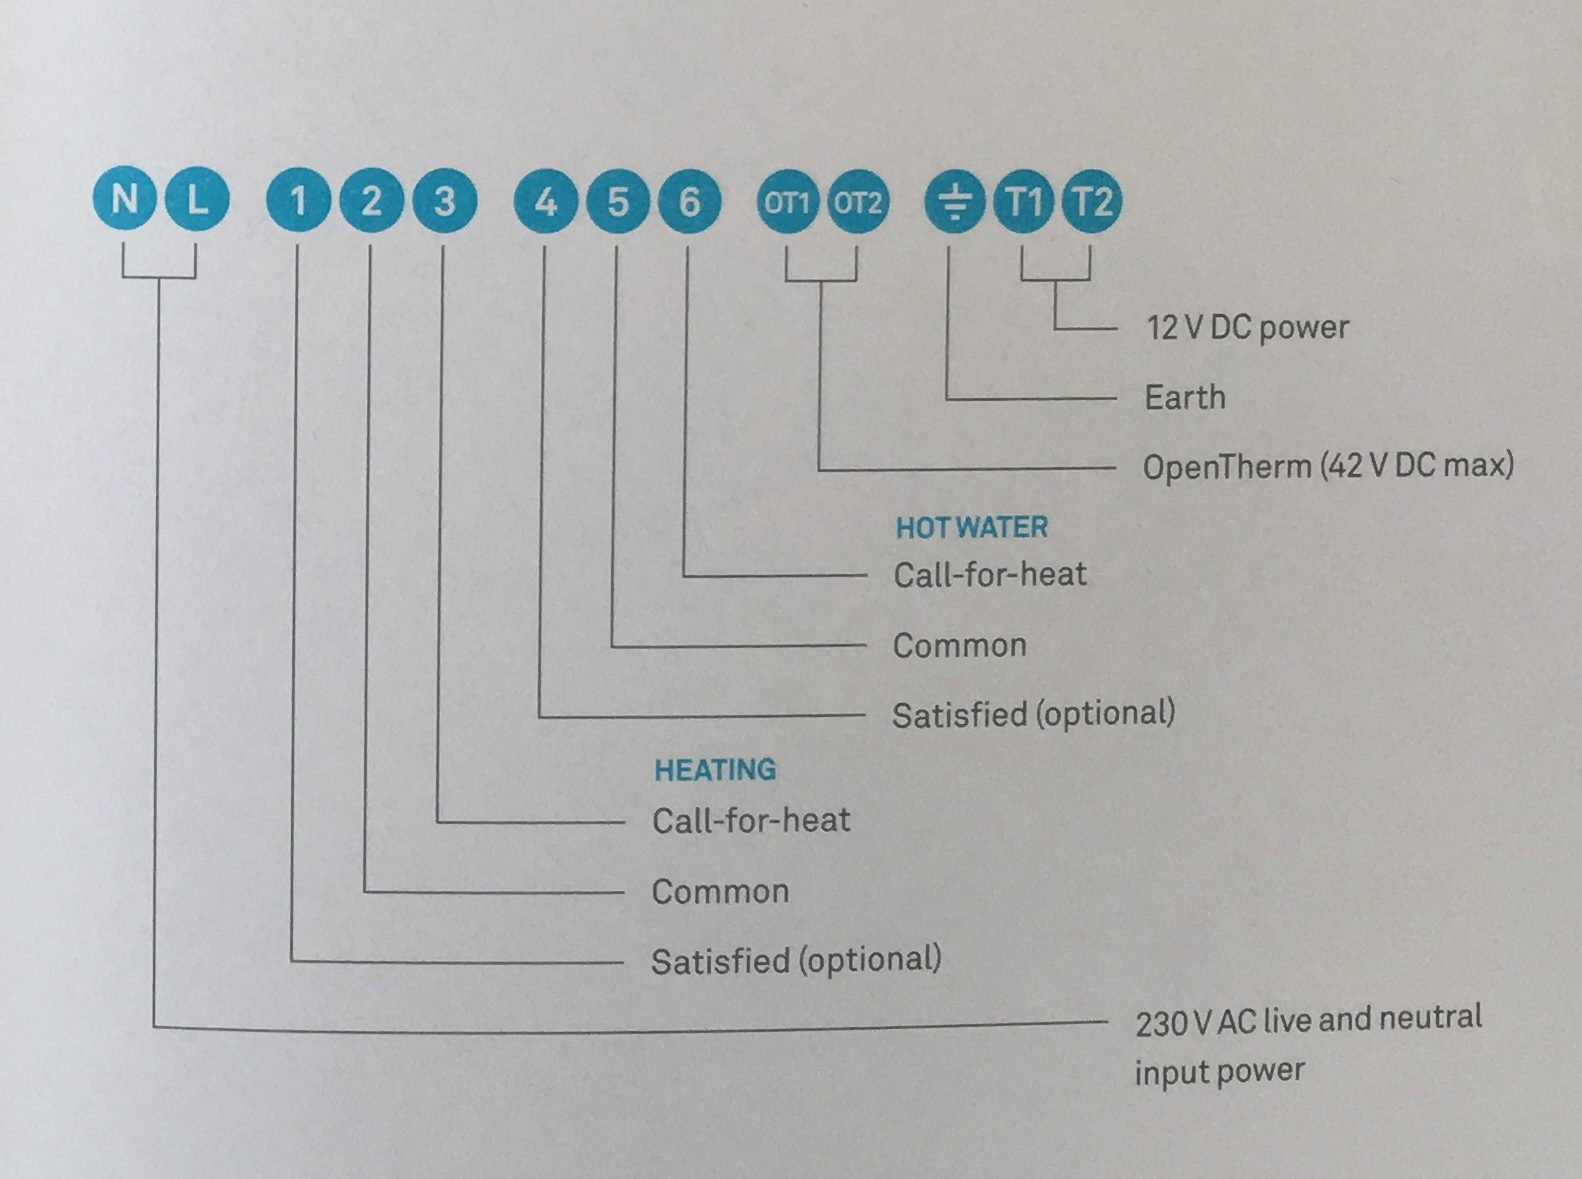 Wiring Diagram For Nest Thermostat Uk | Wiring Diagram - Nest Thermostat 3Rd Gen Wiring Diagram